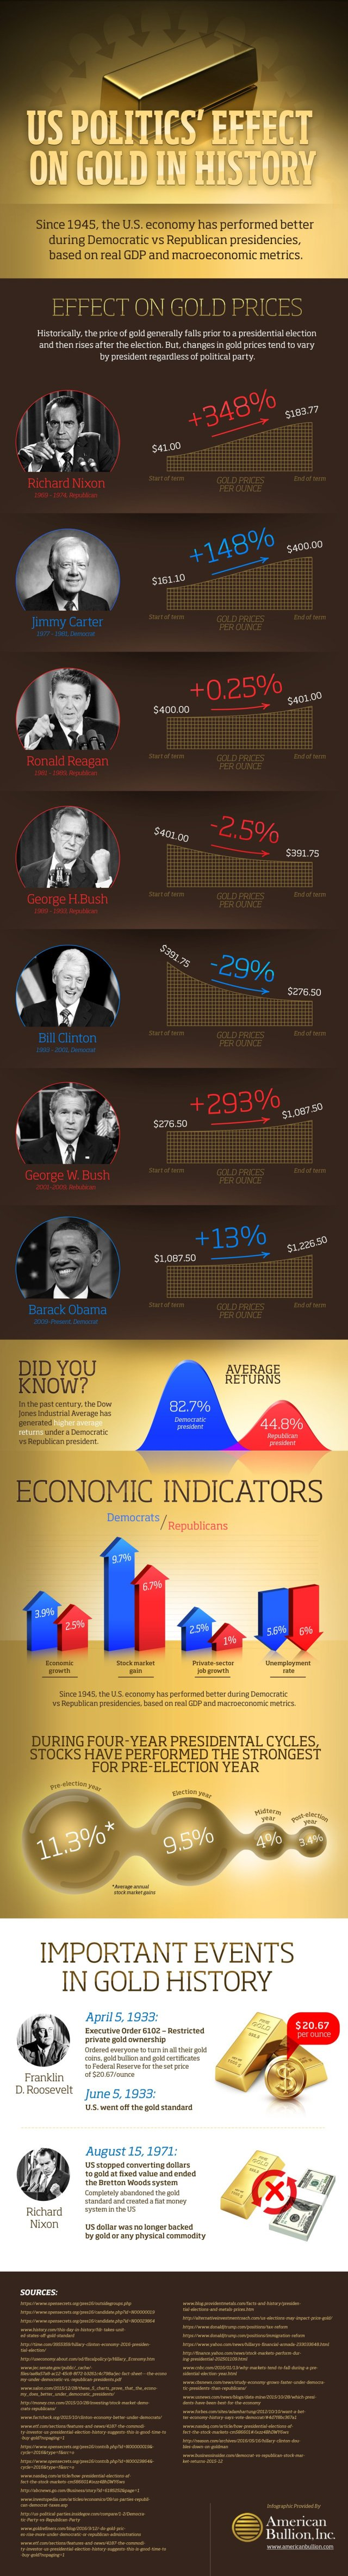 presidential-candidates-effect-on-economy-gold_580903cc243f2